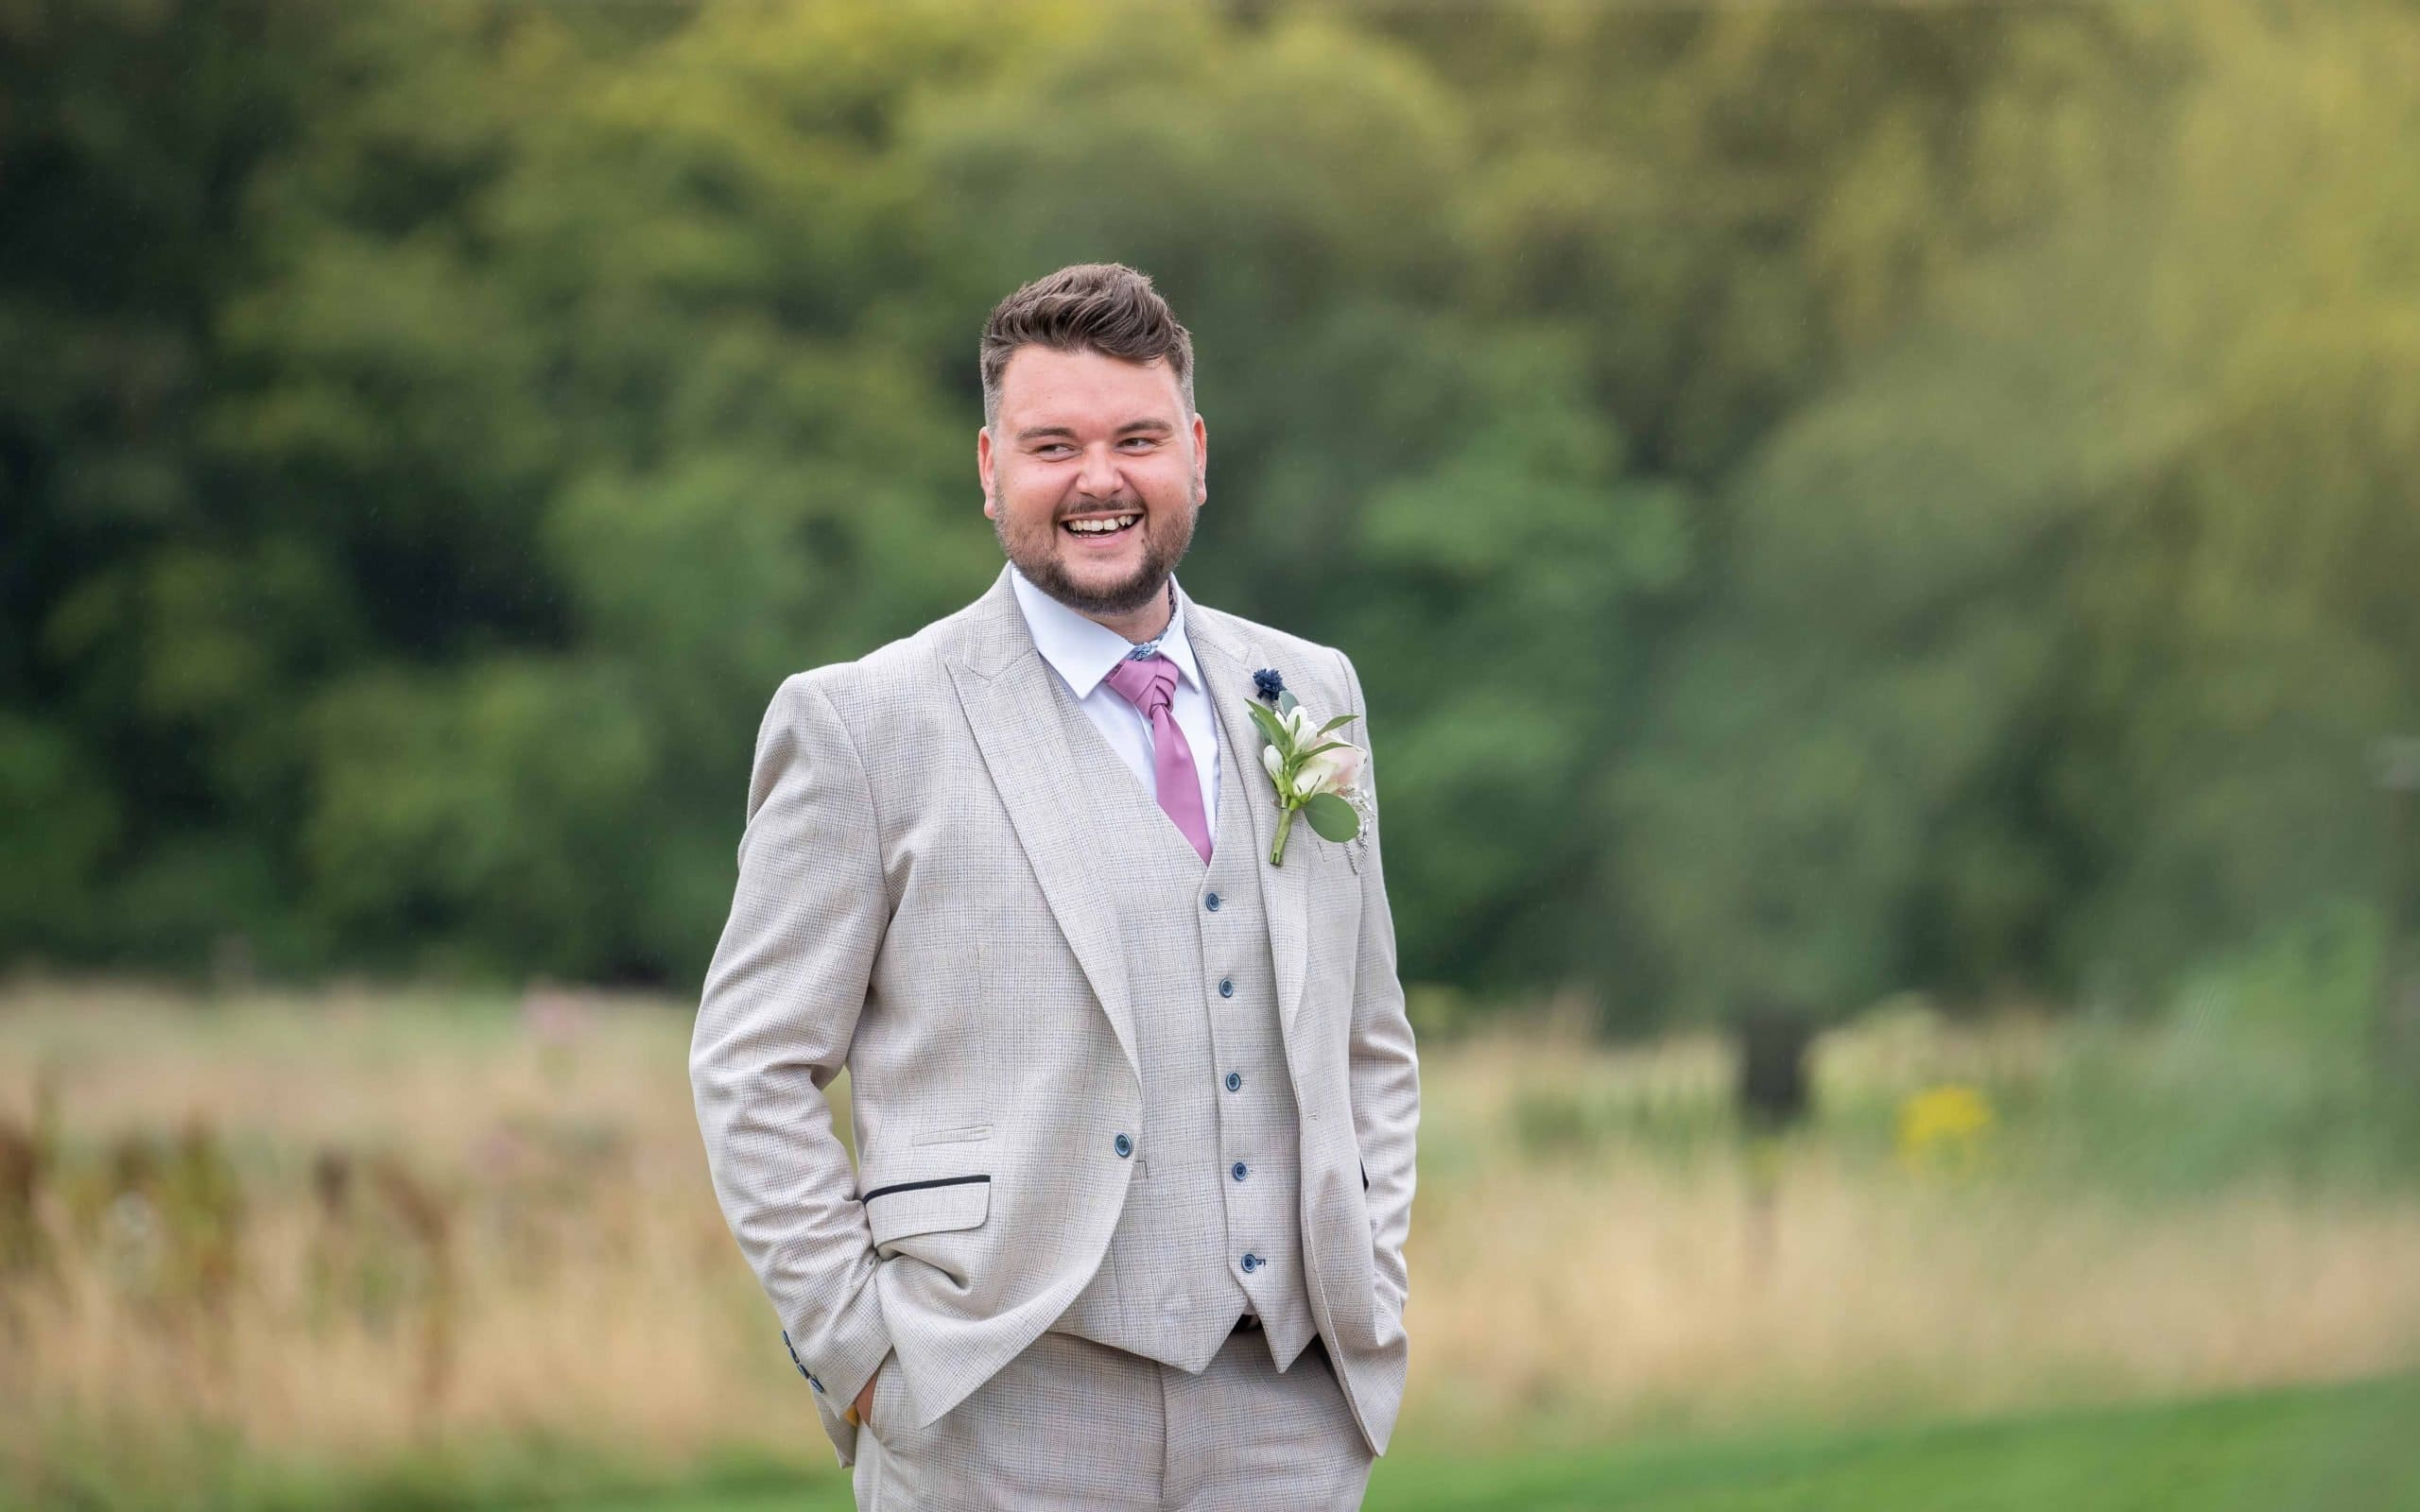 The groom at South Causey Inn Wedding